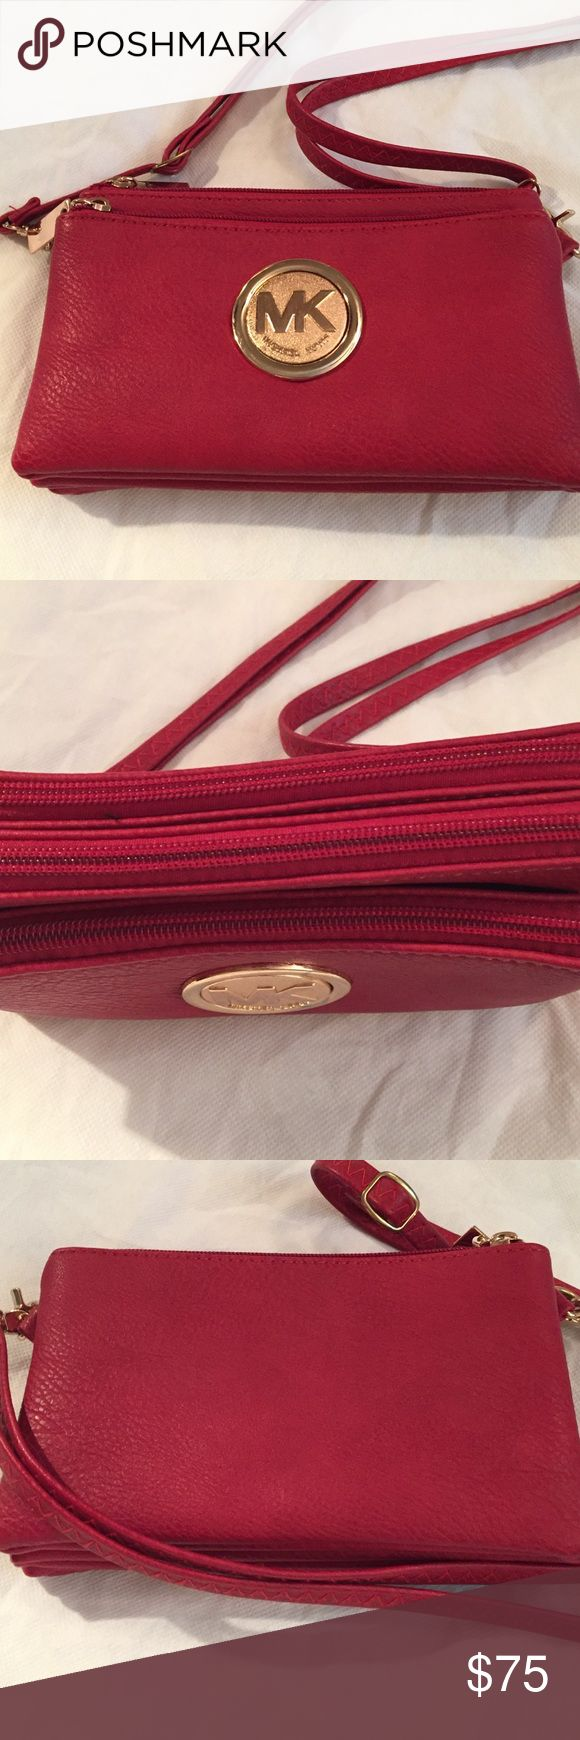 MK Crossover Purse Red, 3 pocket crossover purse. Beautiful!! Michael Kors Bags Crossbody Bags